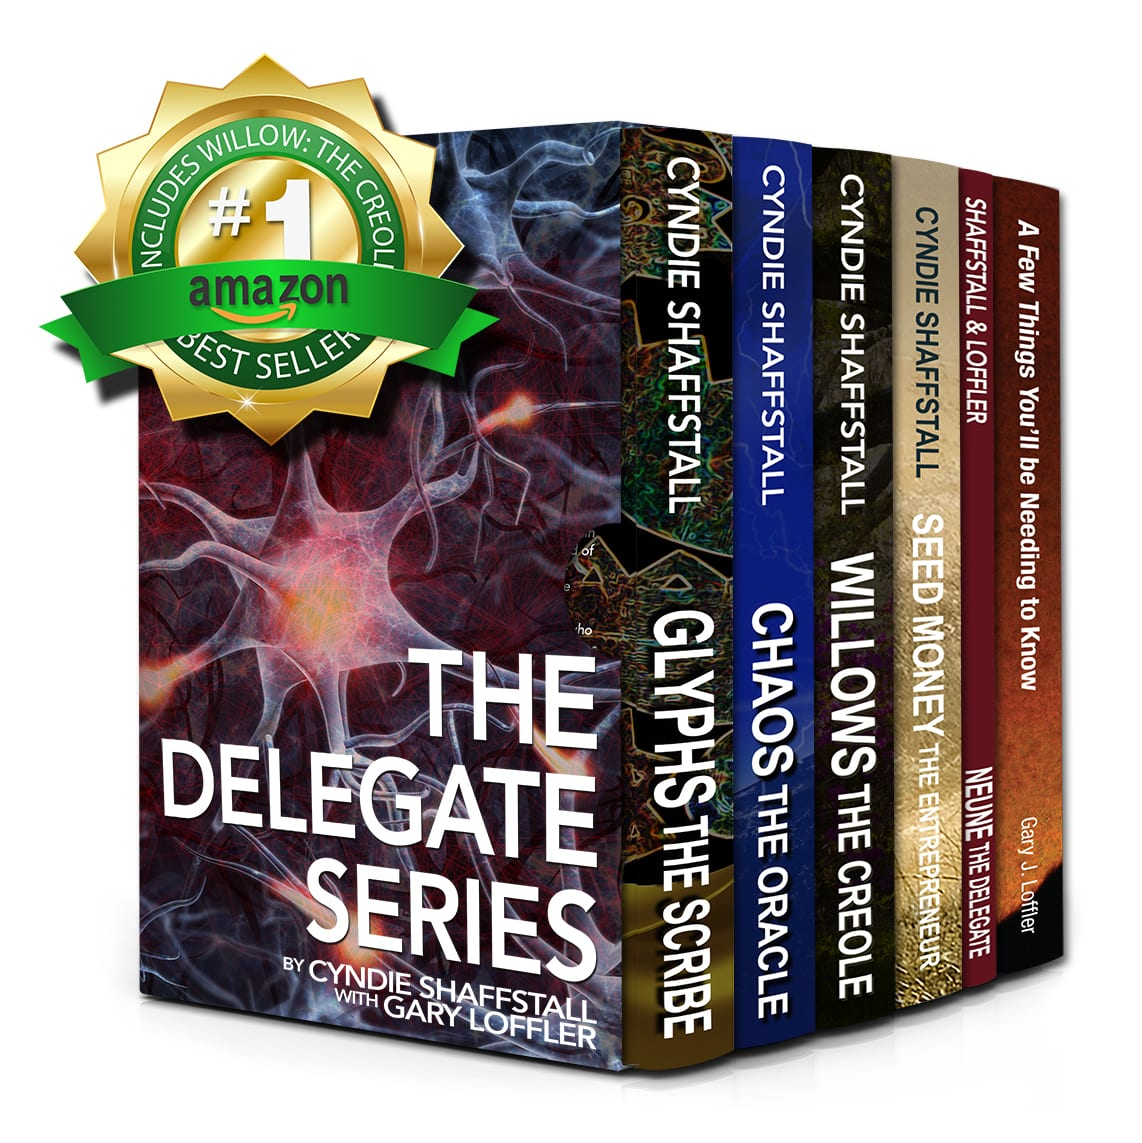 Beginning At The Time Of The Greek God, Zeus, And The Wira God, Wiraqucha,  The Delegate Series Spans Thousands Of Years Told In First Person,